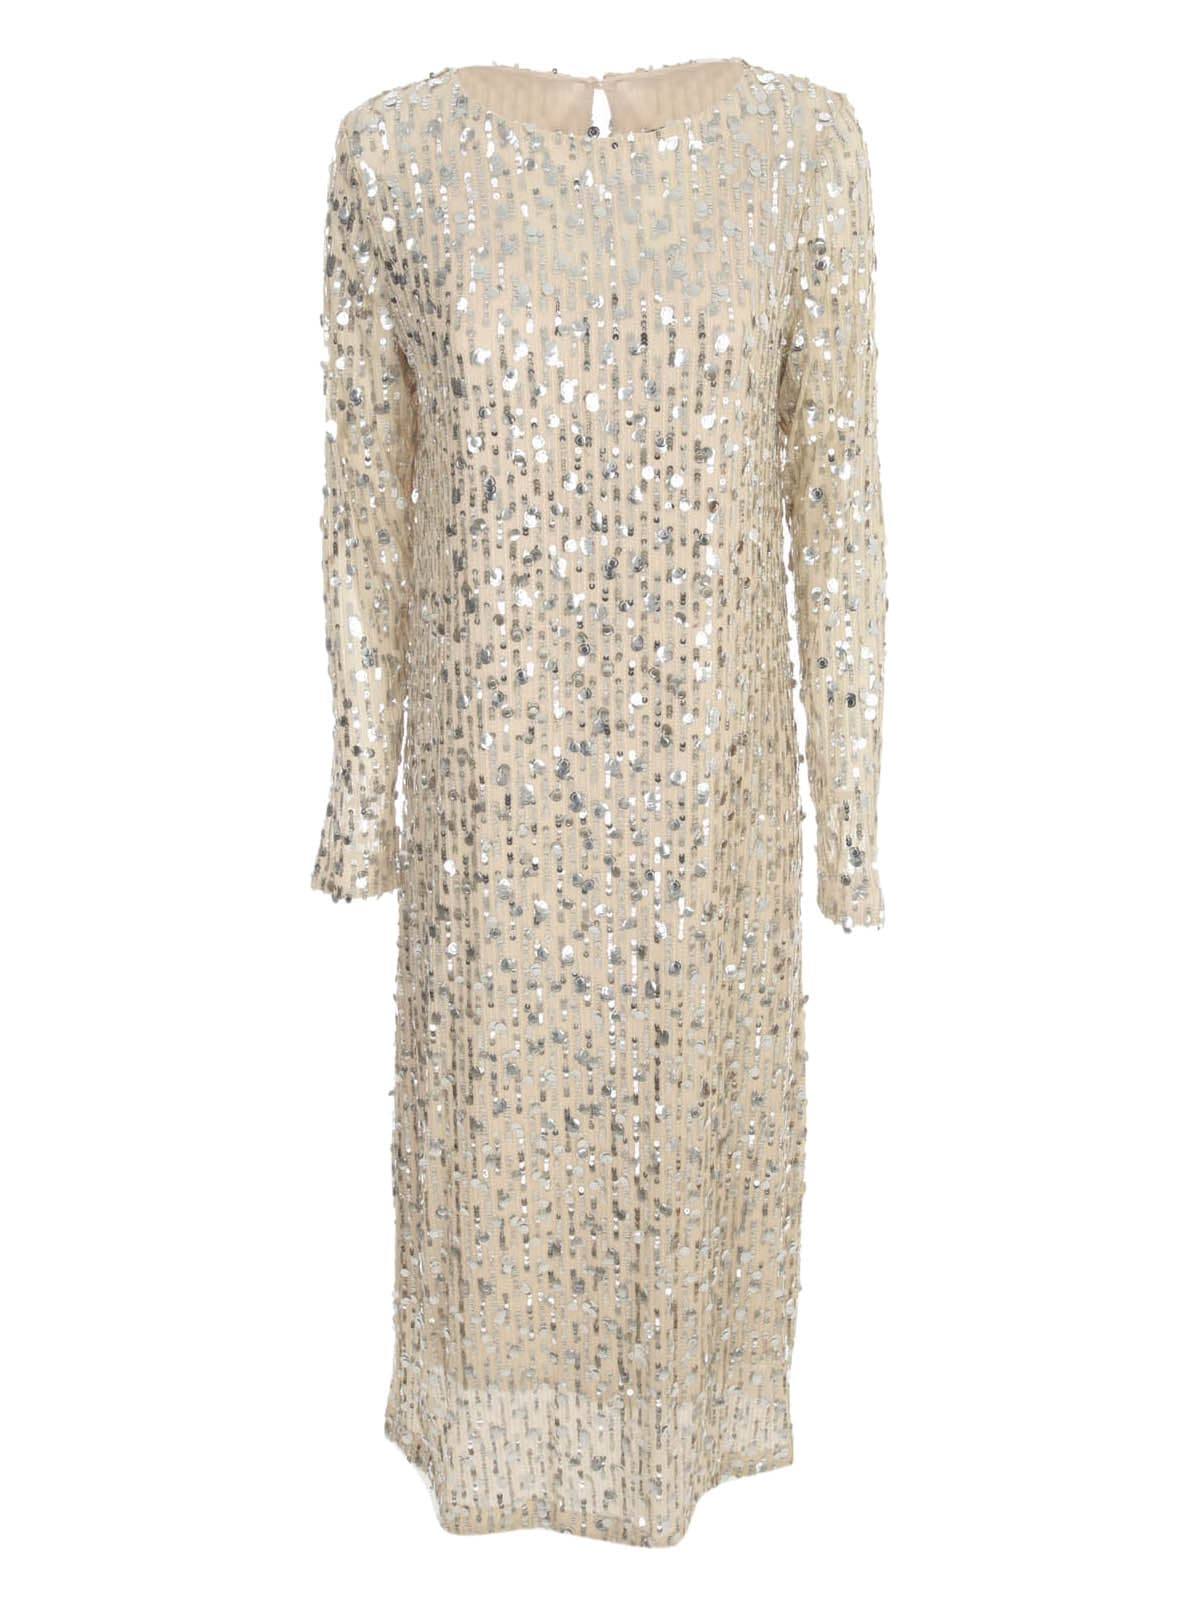 Buy In The Mood For Love Round Neck Long Sleeved Sequin Dress online, shop In The Mood For Love with free shipping